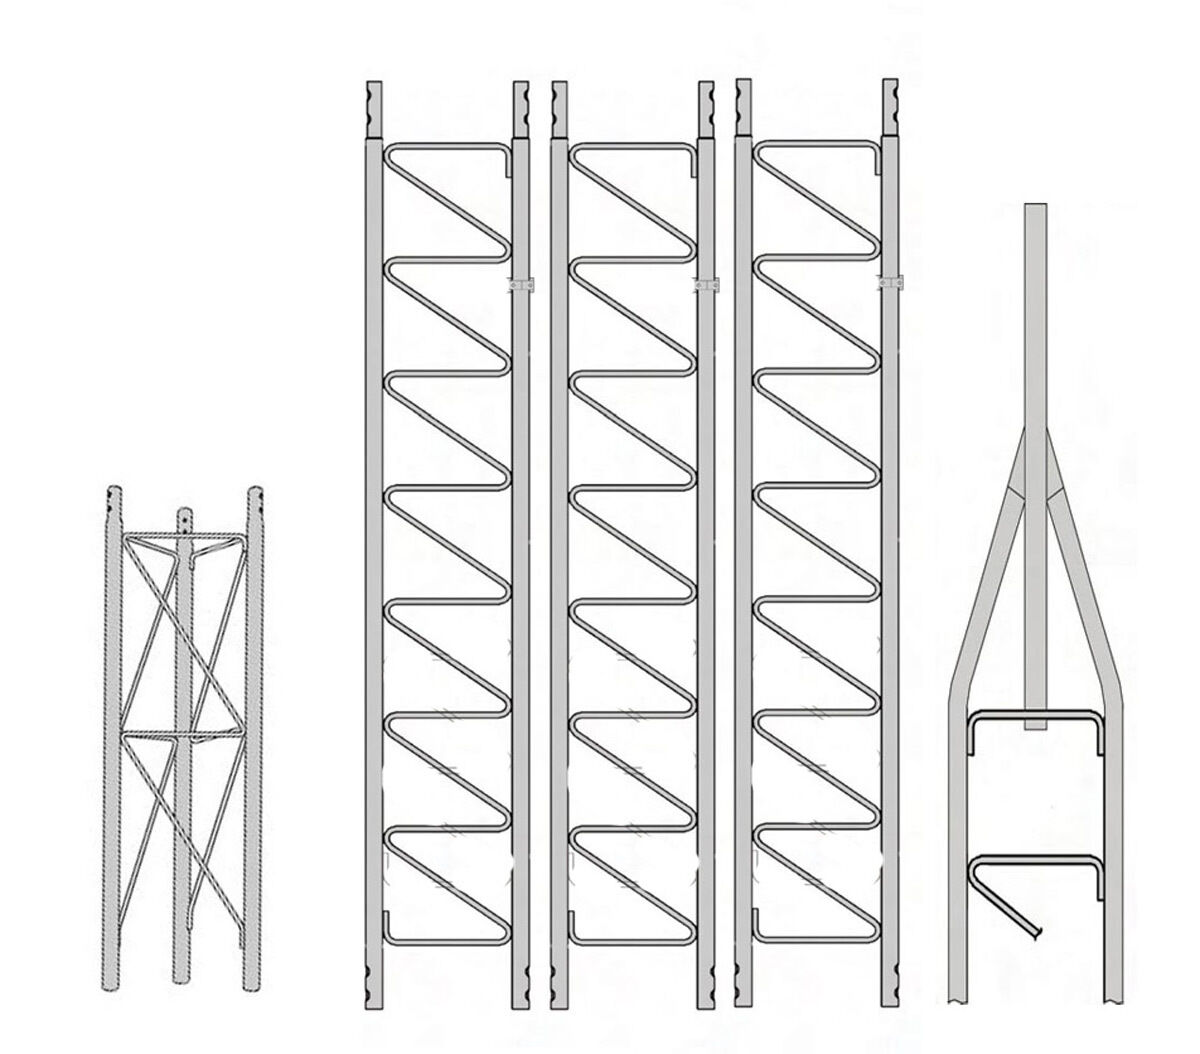 ROHN 25SS040 25G Series 40' Self Supporting Tower Kit . Available Now for 830.00